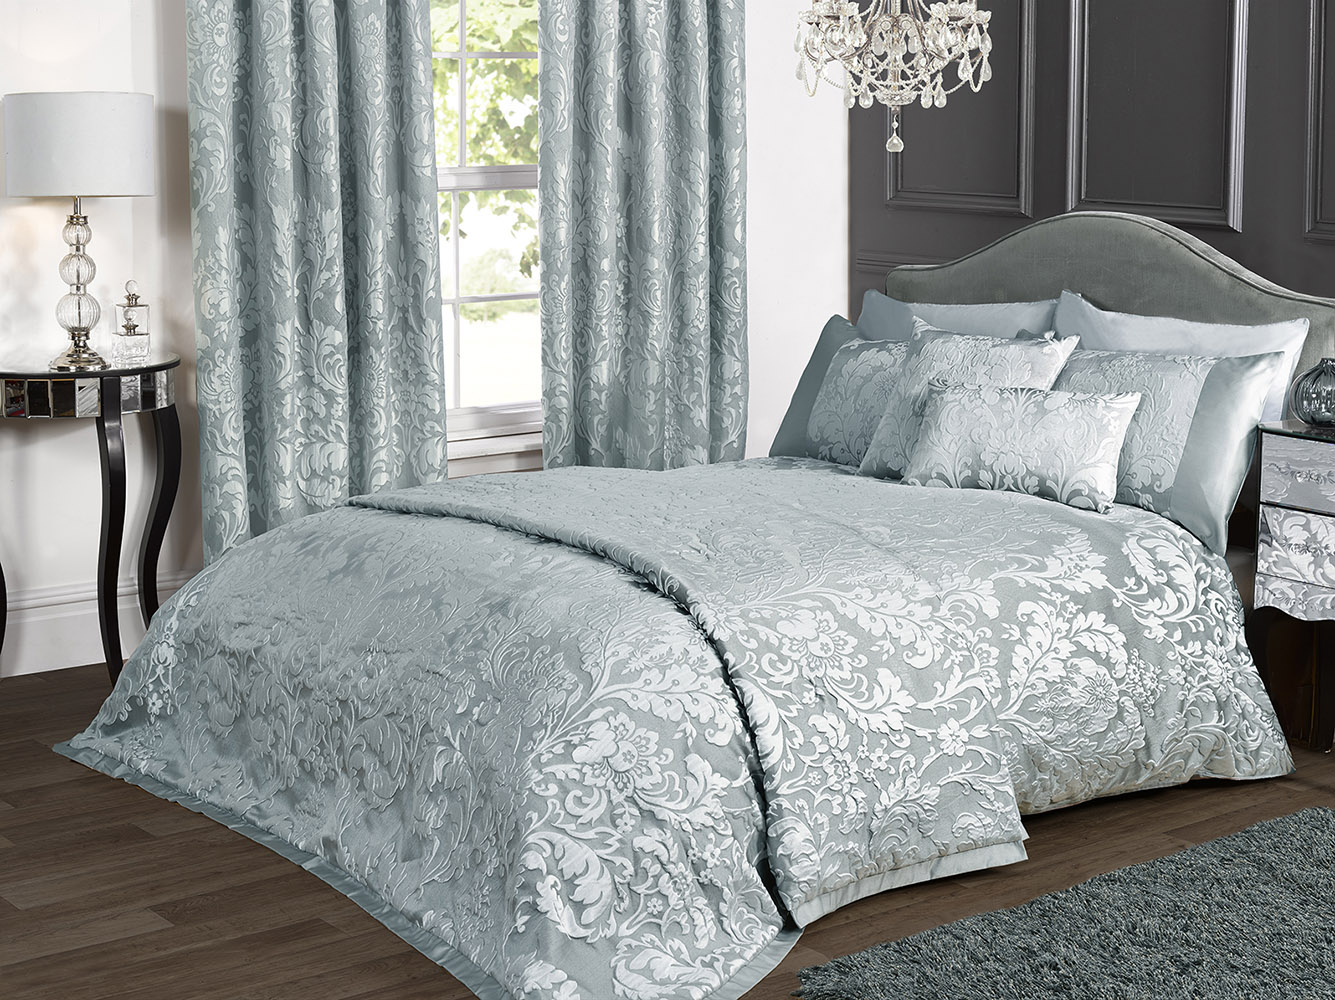 Luxury Charleston Jacquard Damask Bedspread in Duck Egg Blue